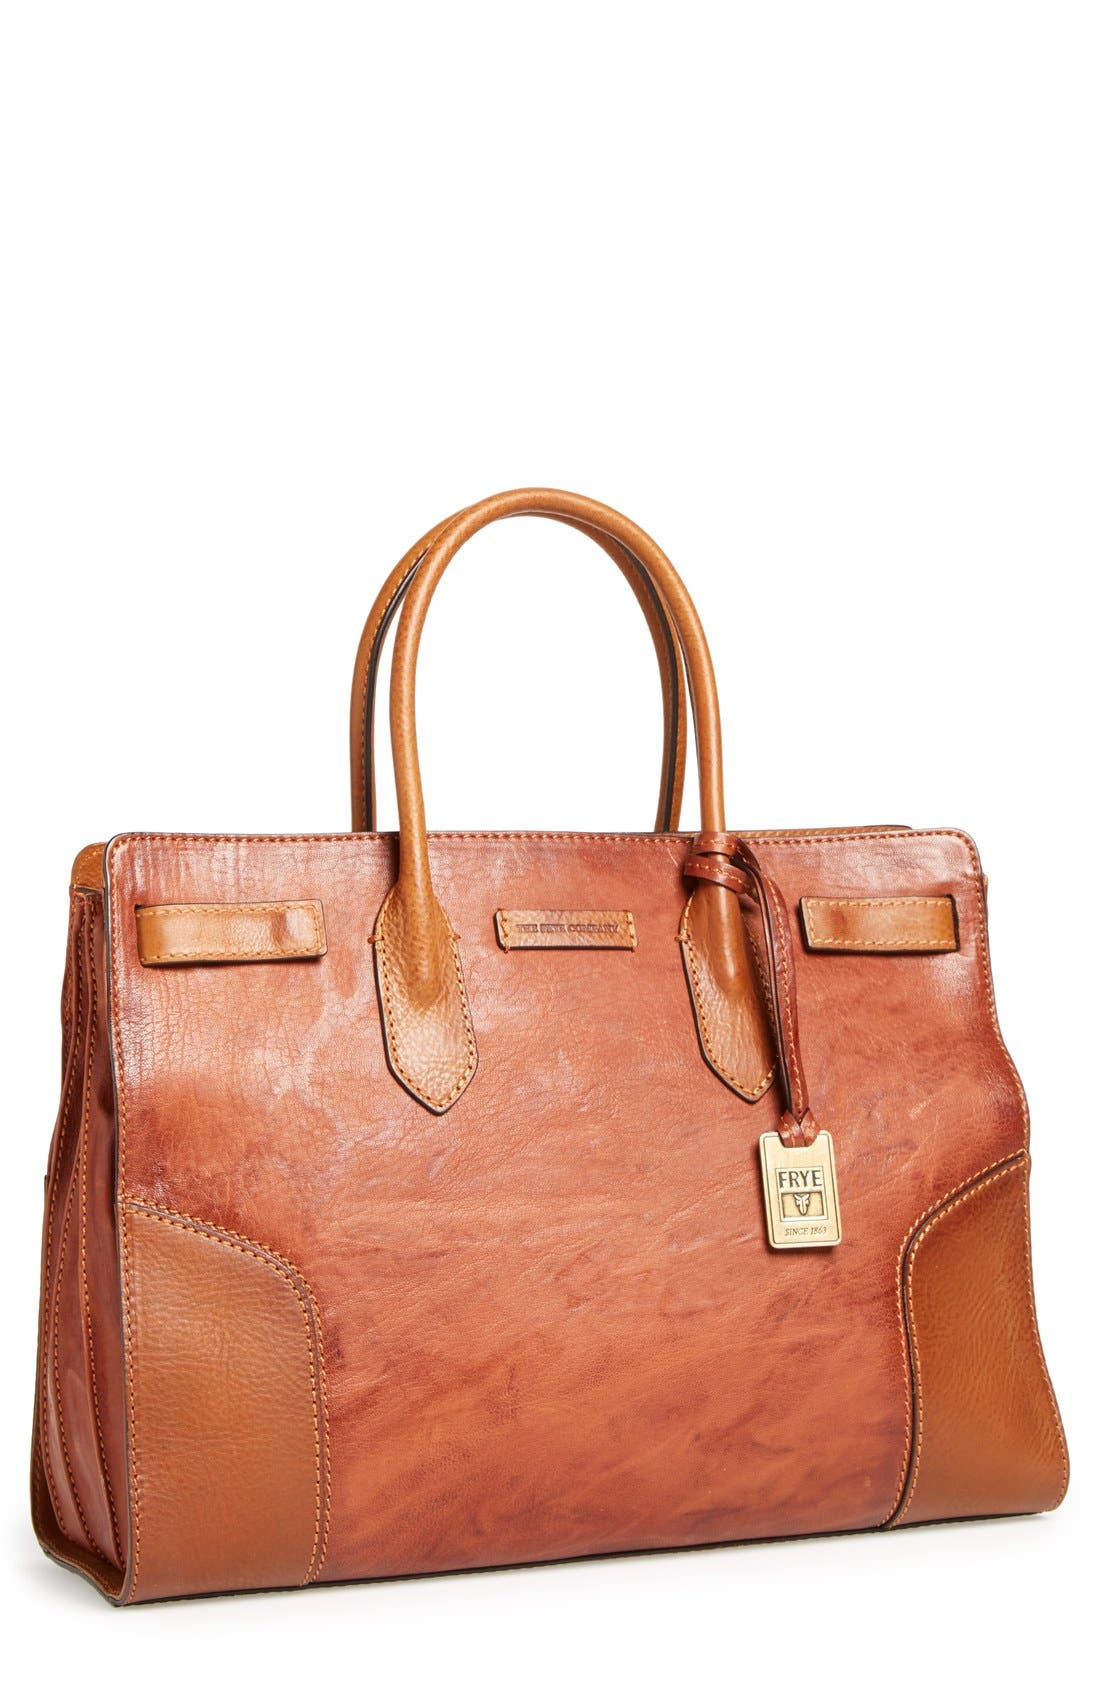 Alternate Image 1 Selected - Frye 'Michelle' Leather Work Tote